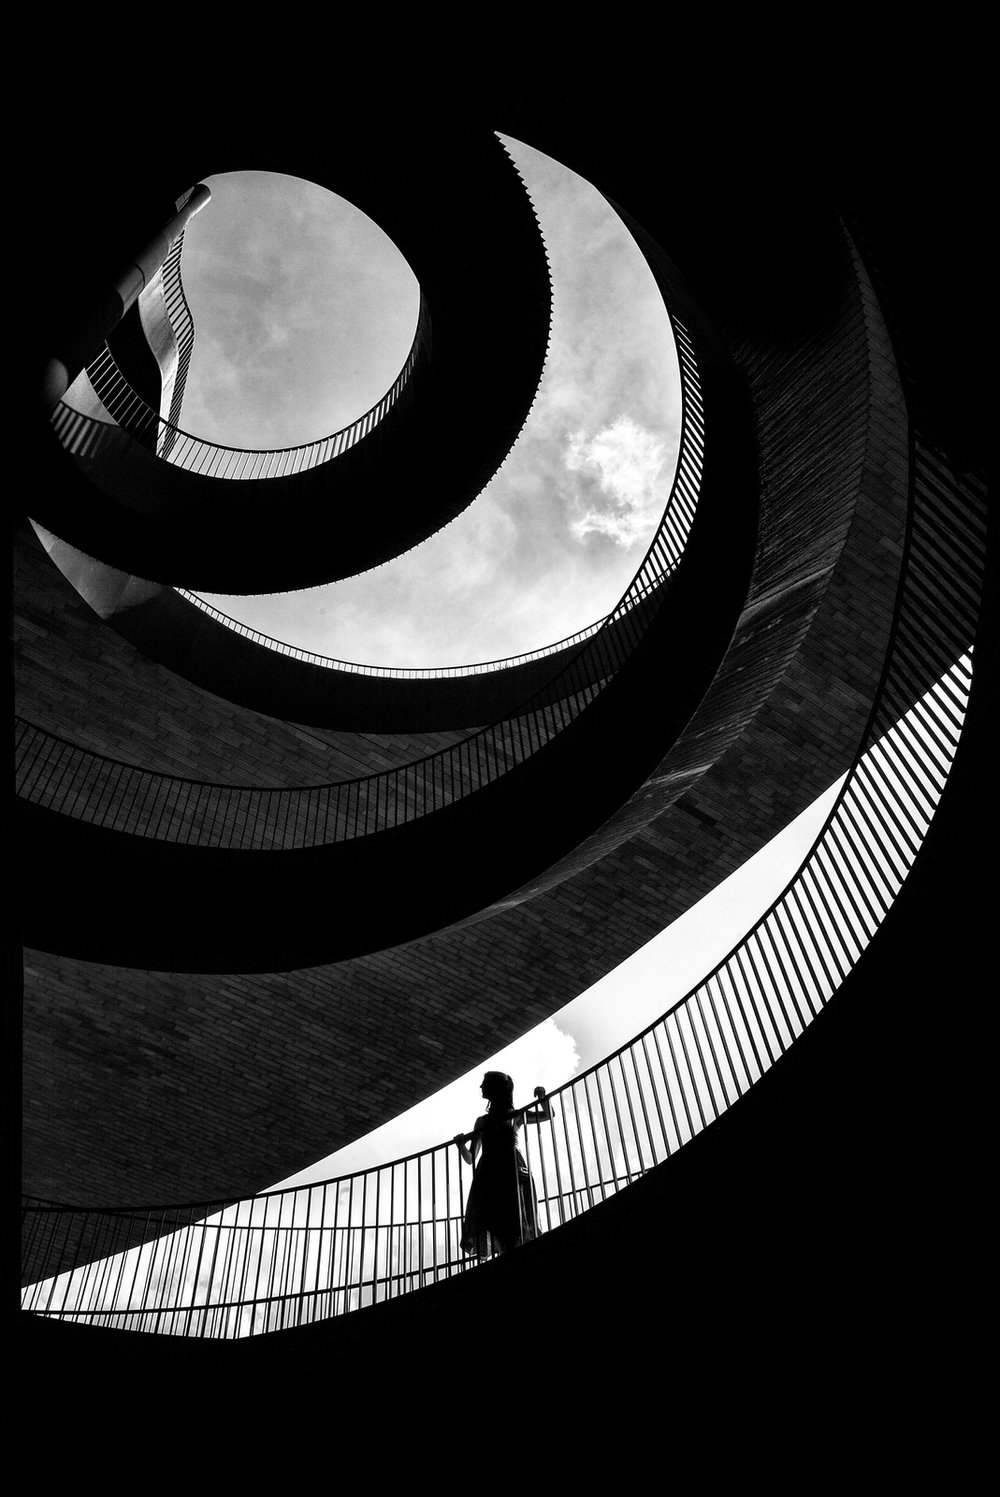 Alan Schaller - London Street Photographer - Metropolis8.jpg